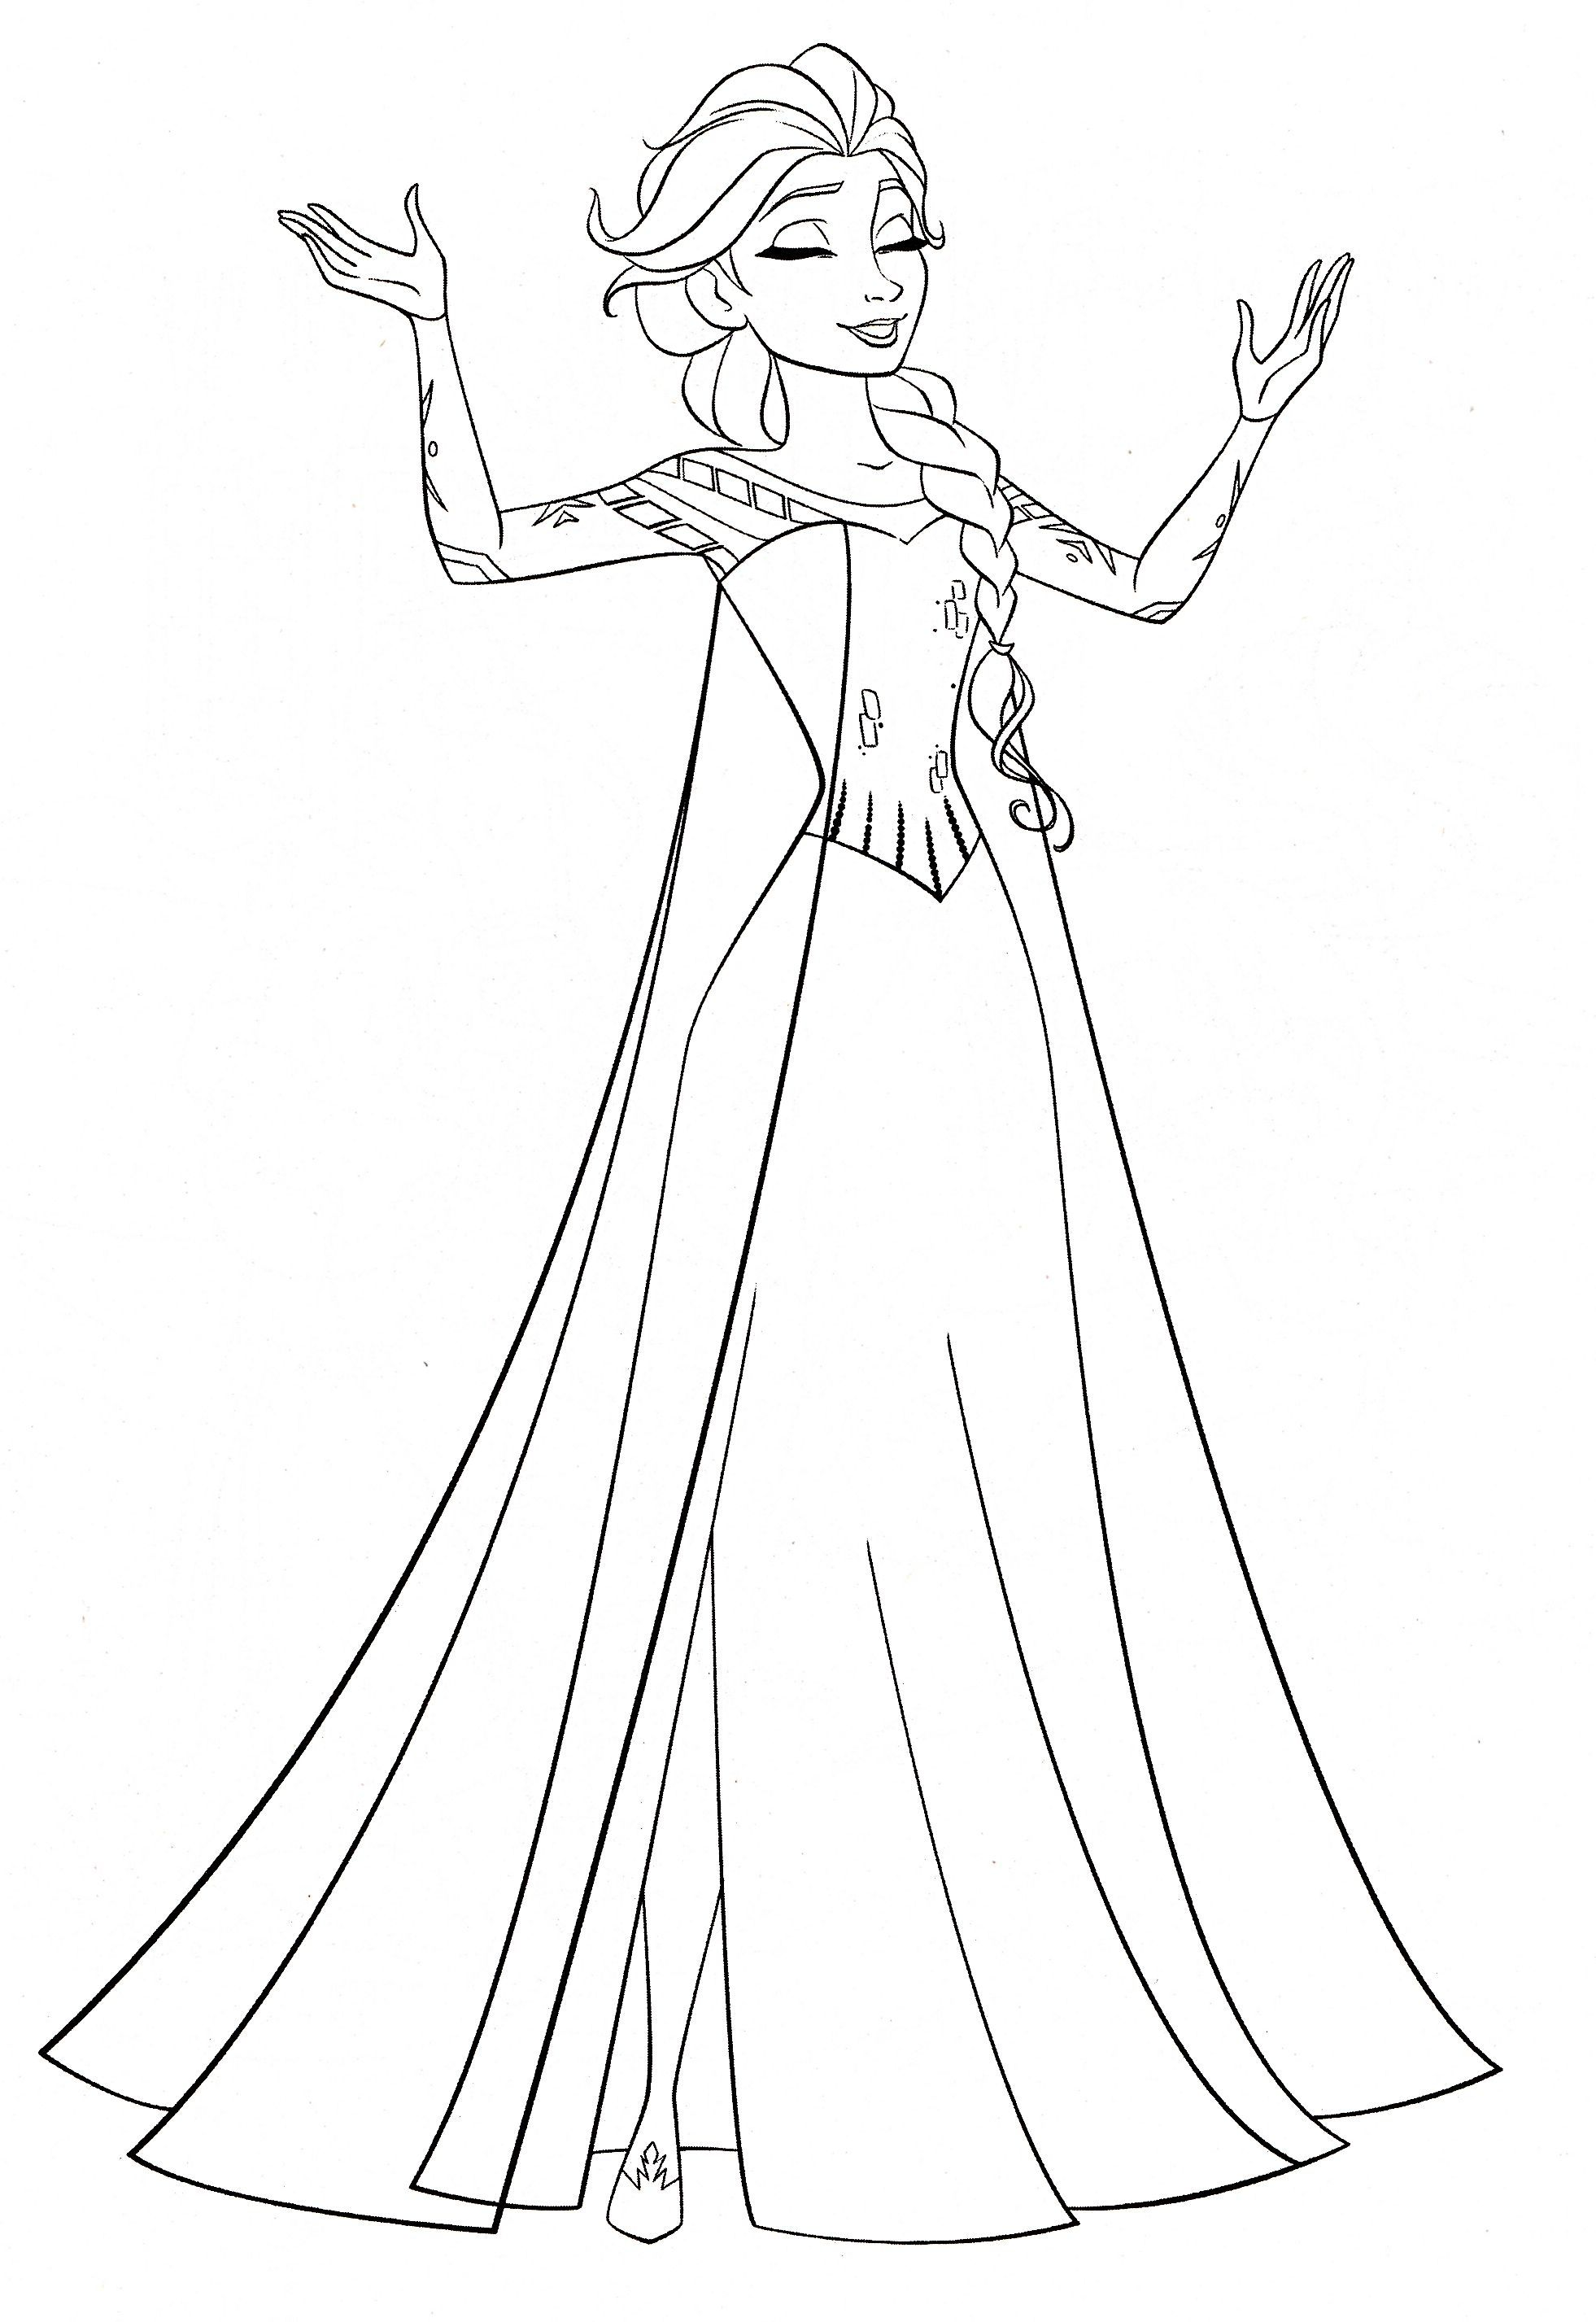 Queen Elsa Coloring Pages Frozen Queen Elsa Coloring Pages Queen Elsa And Princess Disney Princess Coloring Pages Princess Coloring Pages Elsa Coloring Pages